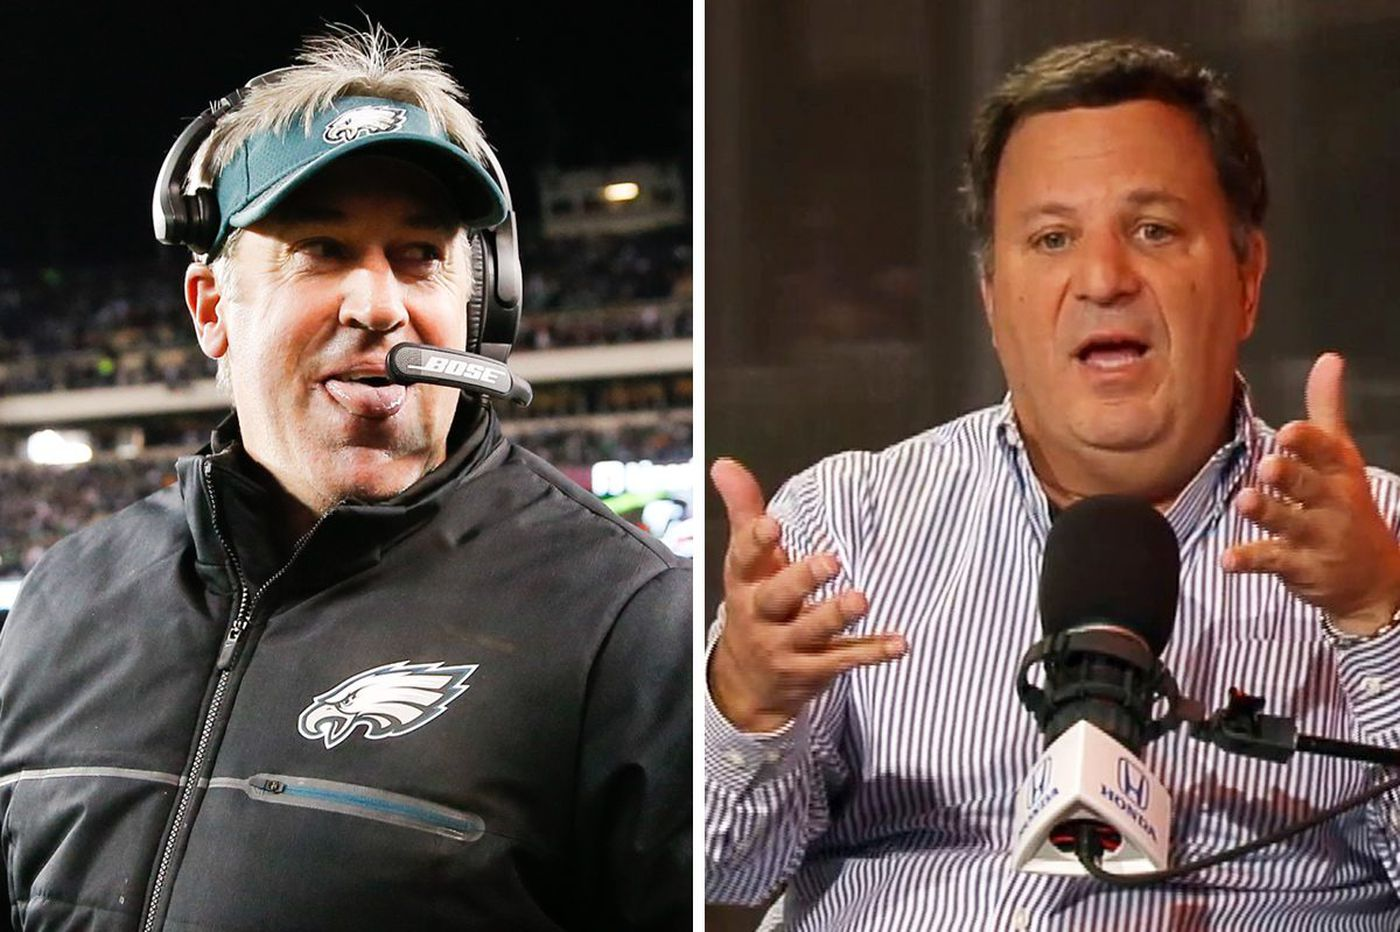 Ex-NFL GM Michael Lombardi apologizes to Eagles coach Doug Pederson... sort of